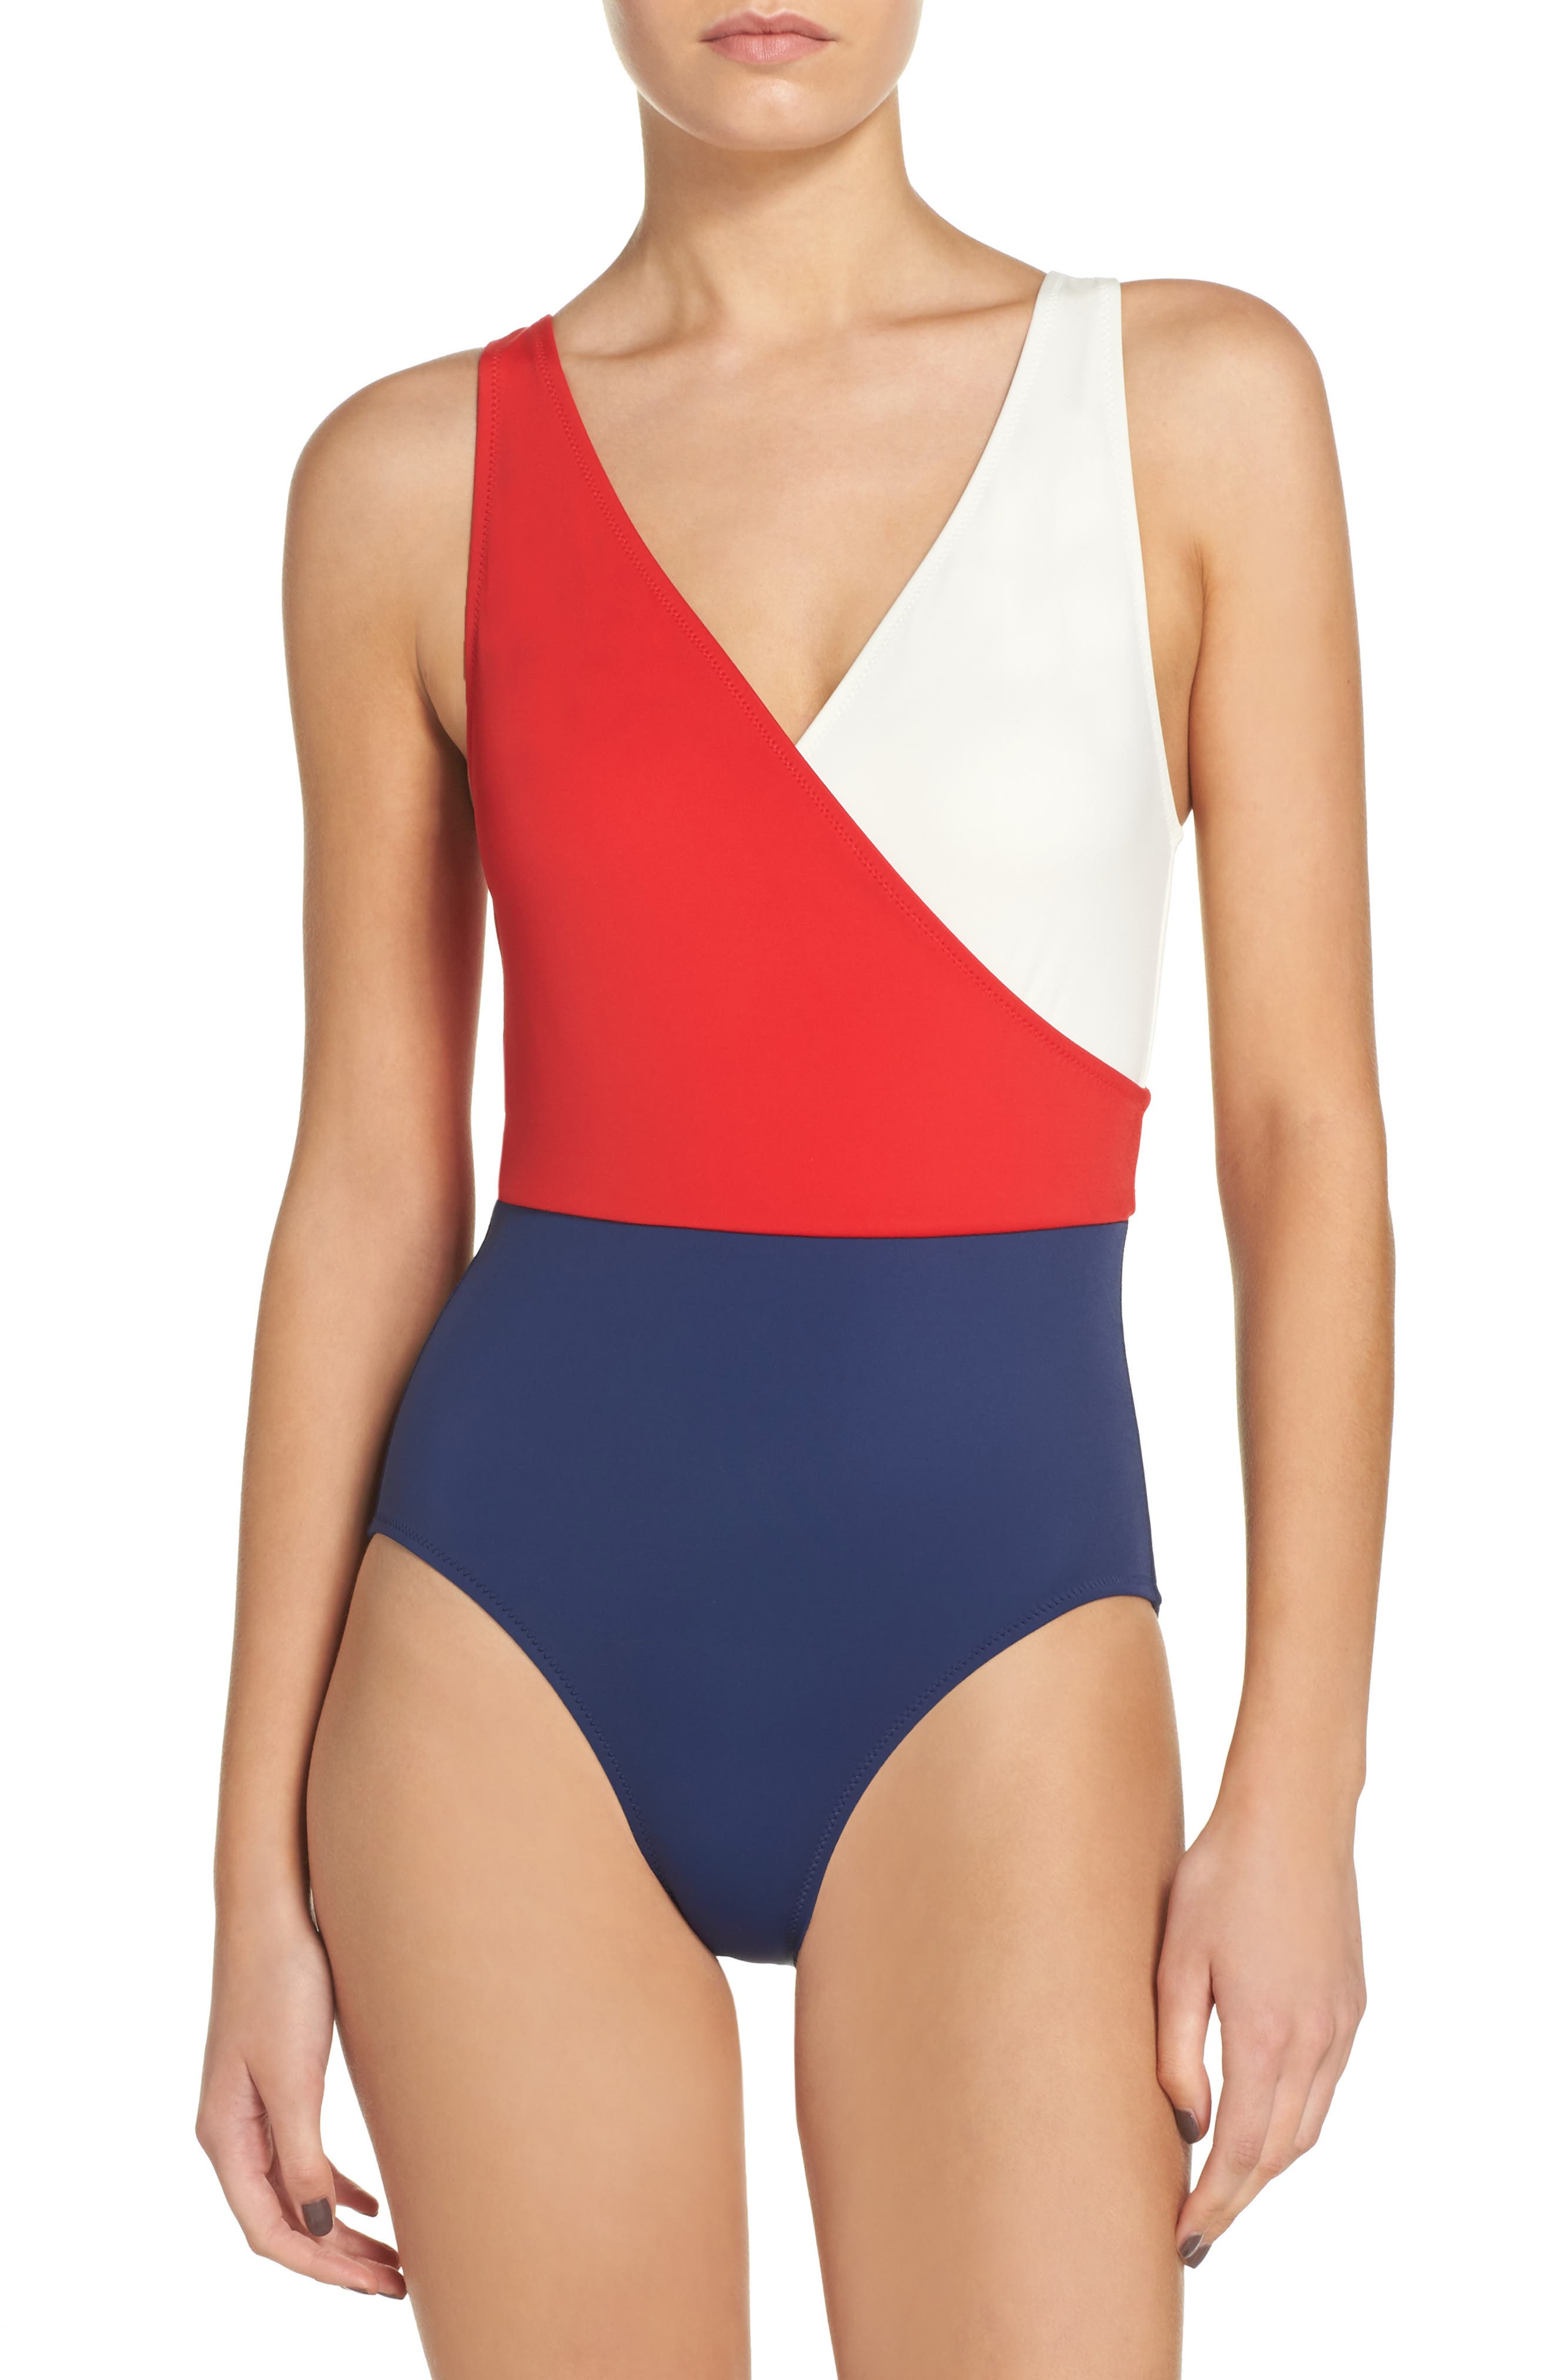 Main Image - Solid & Striped Ballerina One-Piece Swimsuit